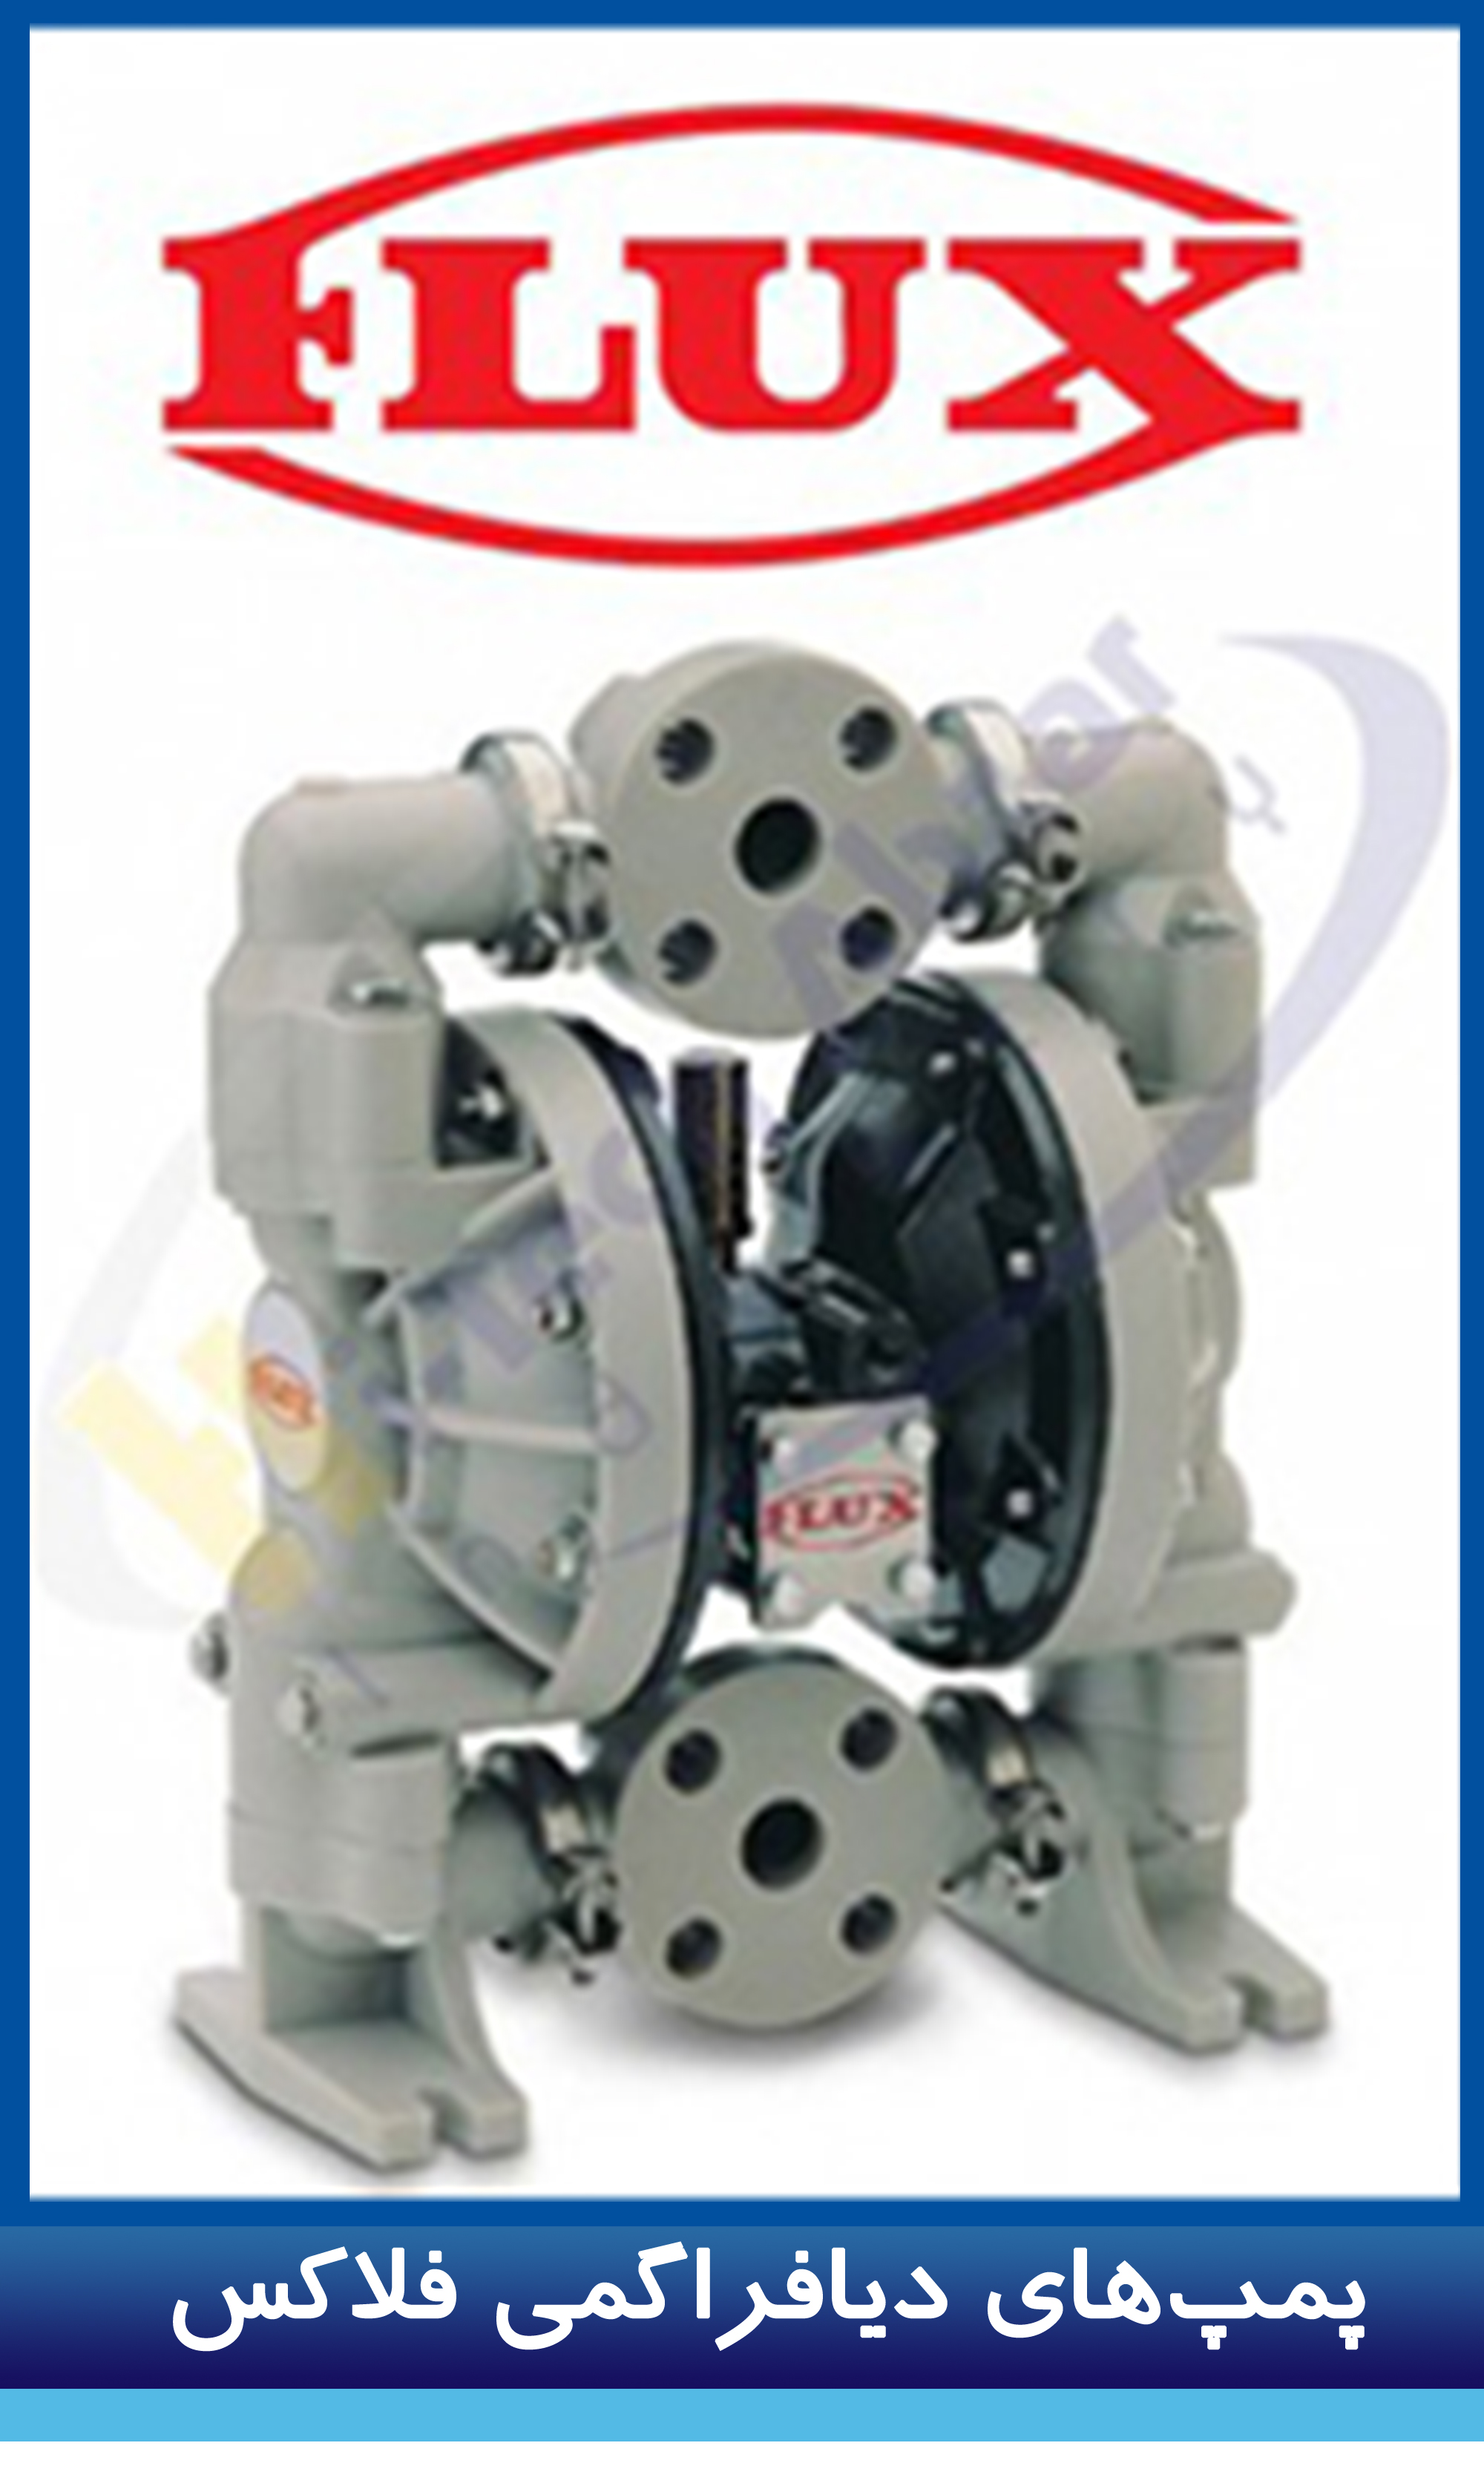 flux_diaphragm_pump_400_01